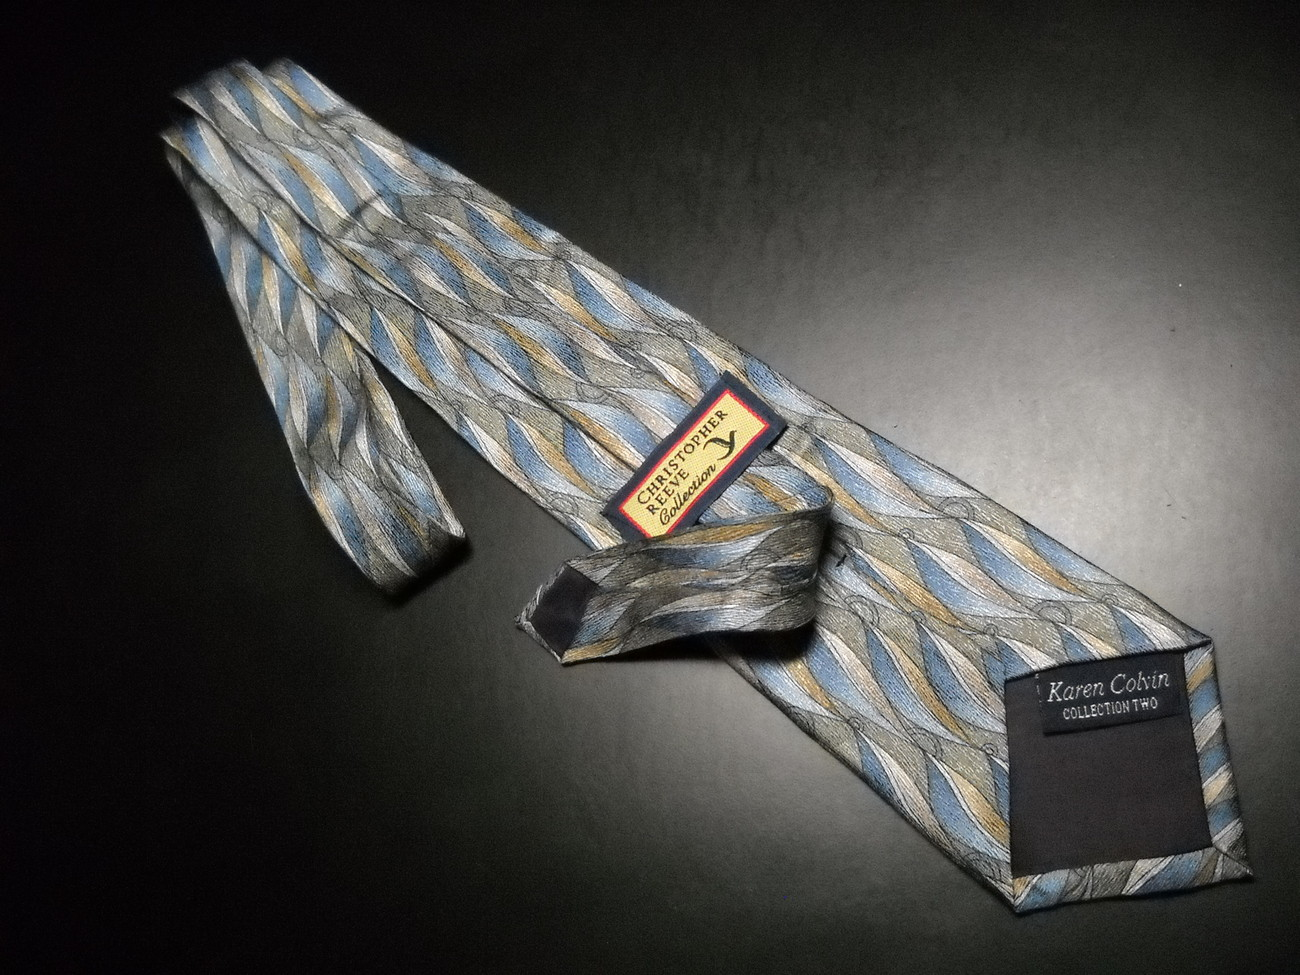 Christopher Reeves Neck Tie Collection Two Karen Colvin Blues Greens Browns